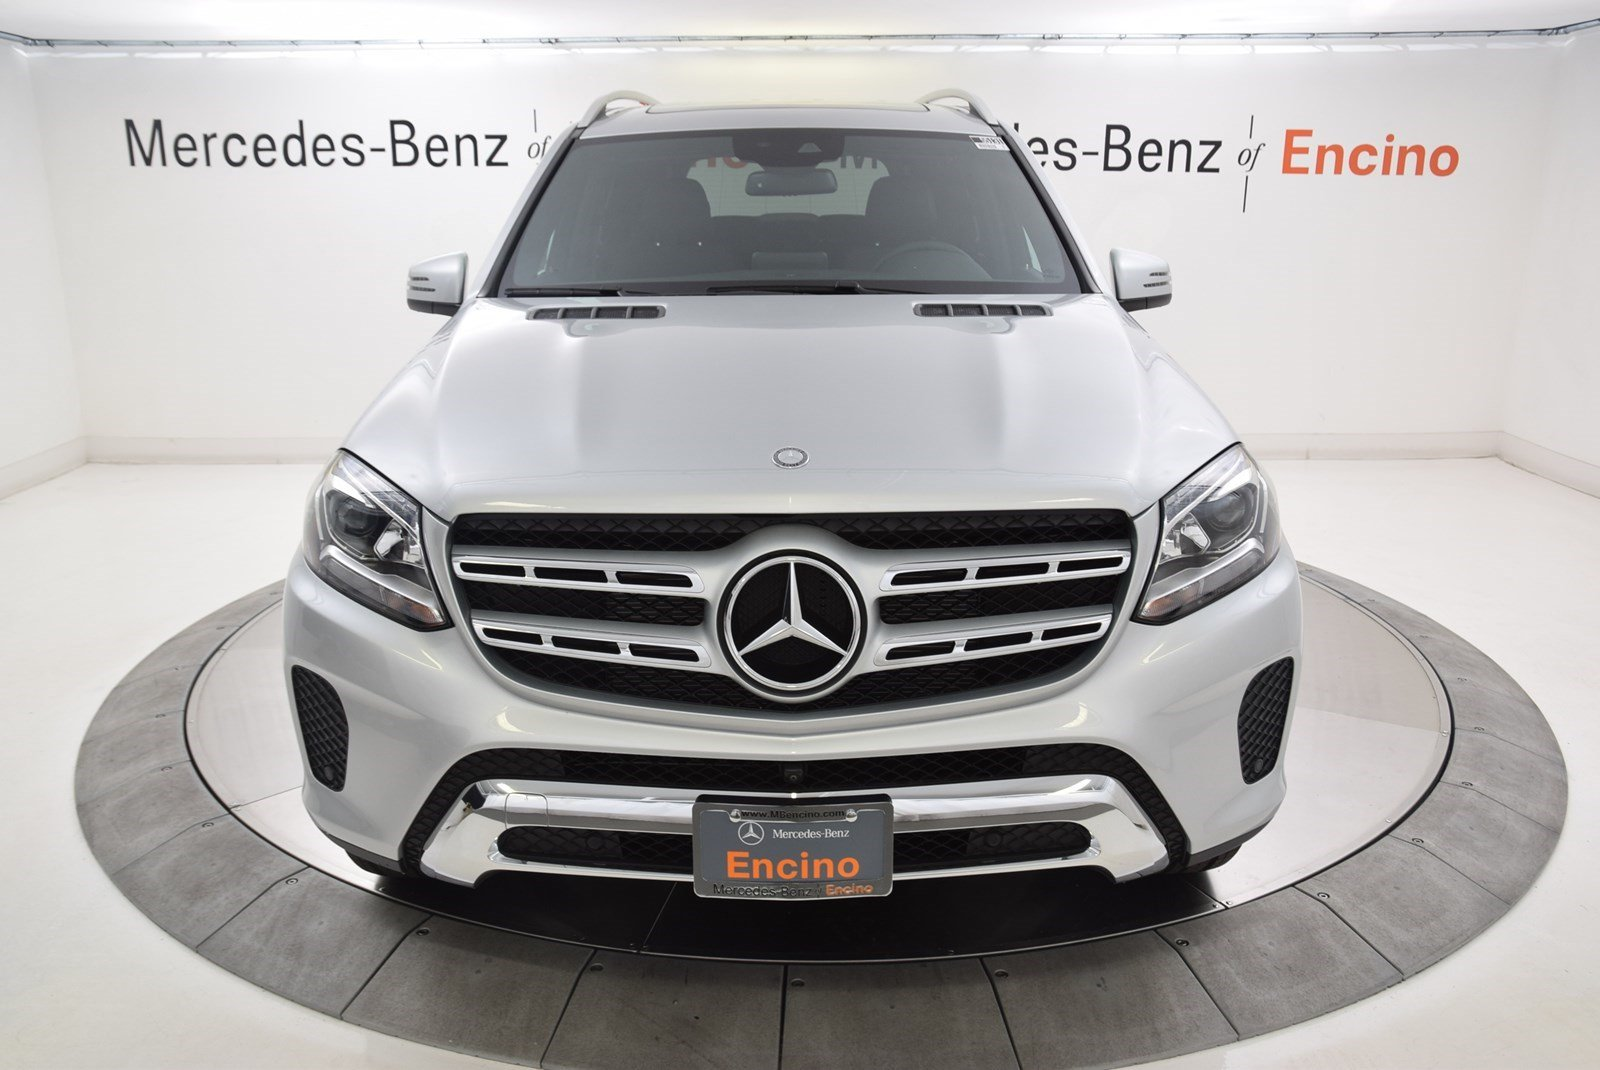 New 2017 mercedes benz gls gls 450 suv in encino 55730 for 2017 mercedes benz gls 450